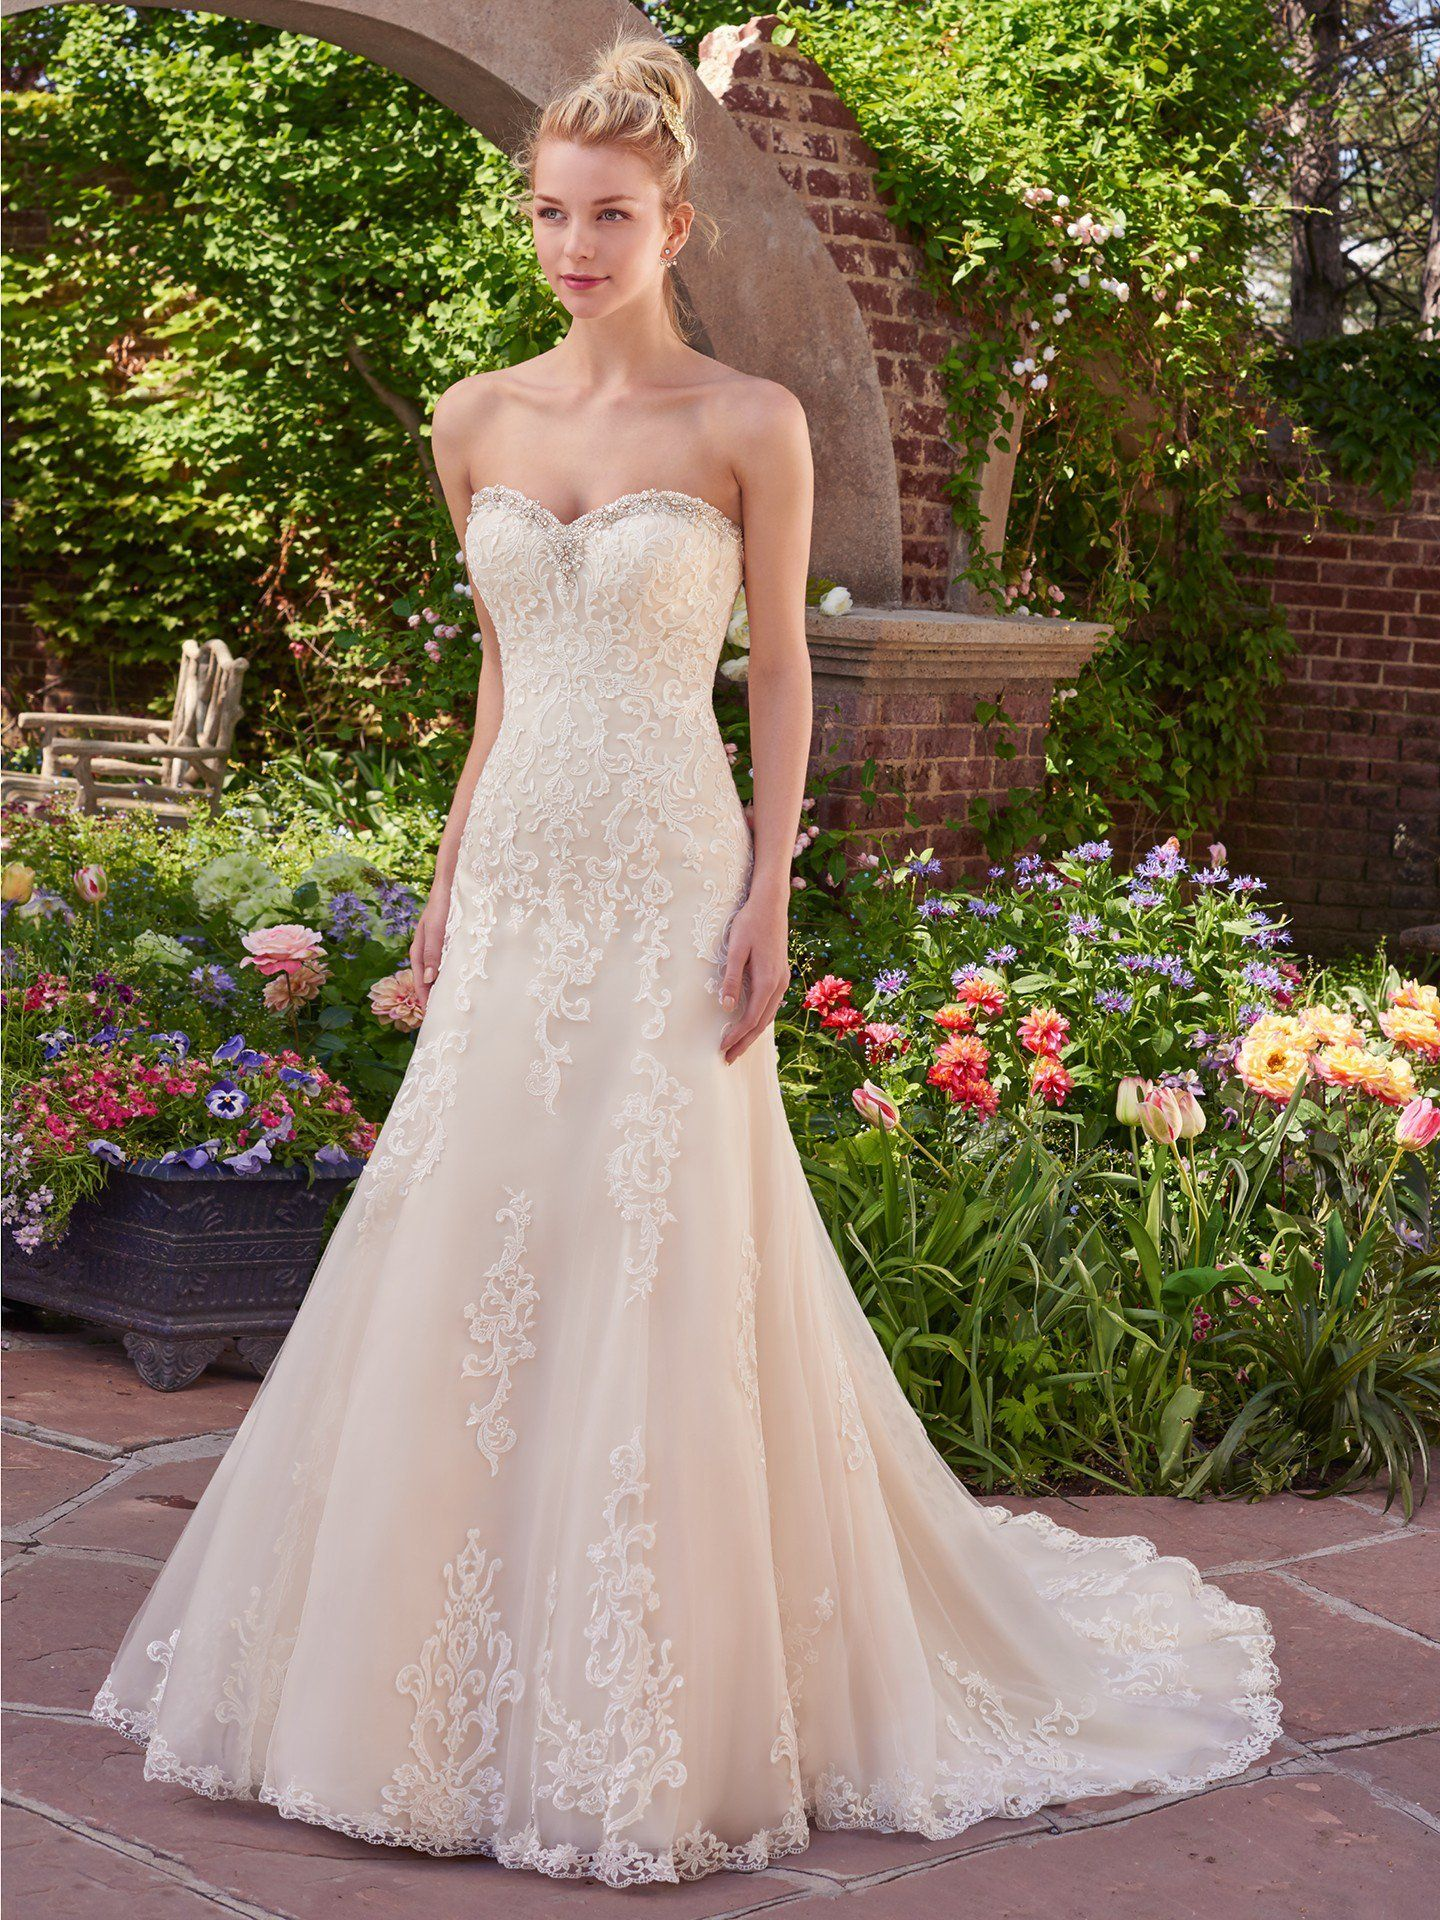 We Are Teaming Up With Rebecca Ingram To Find The Most Figure Flattering Wedding Dress